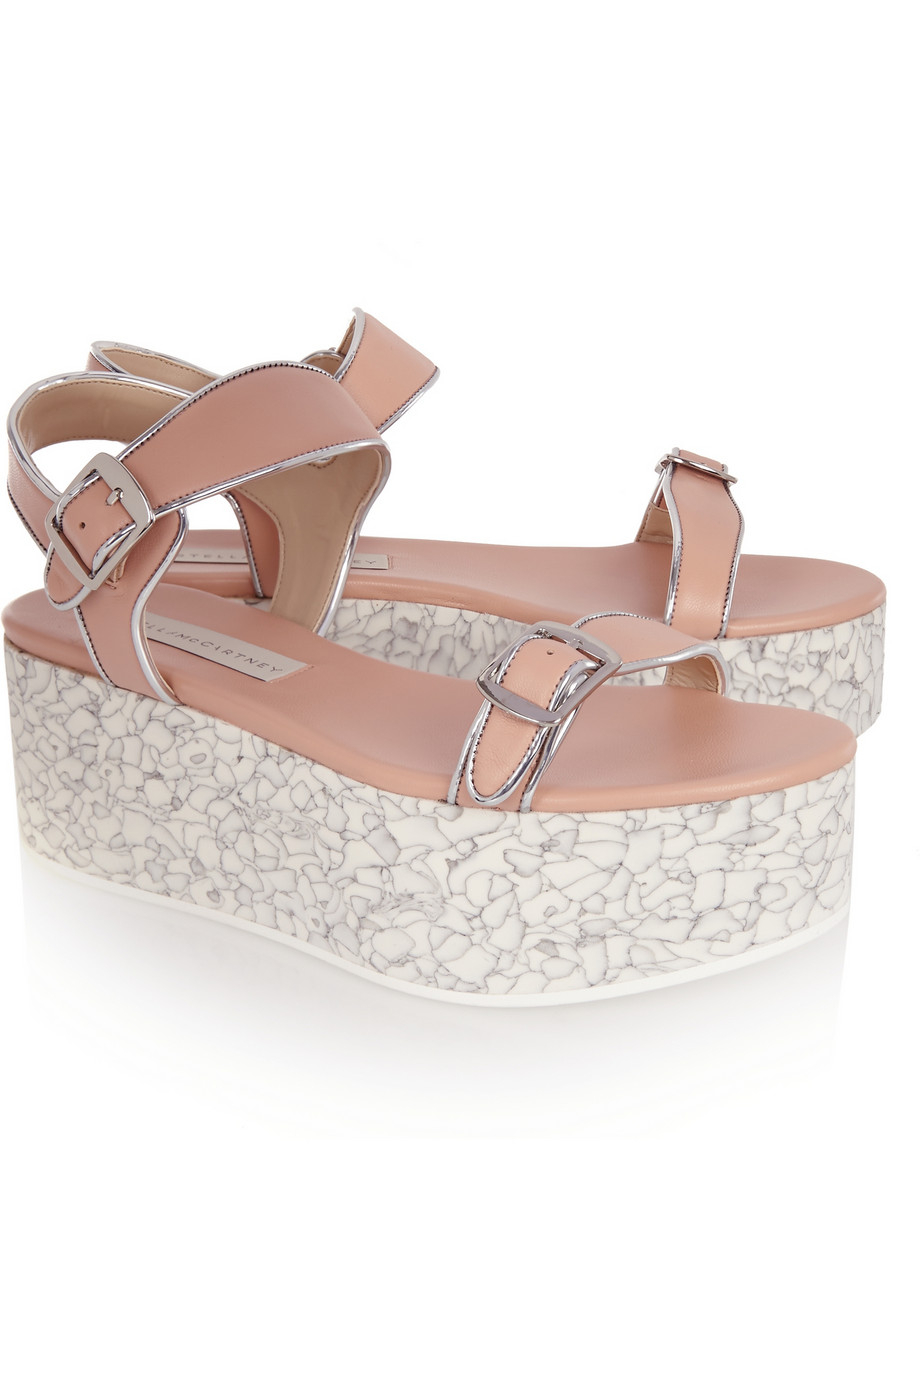 d39a783480b3 Lyst - Stella McCartney Metallic-Trimmed Faux Leather Platform ...